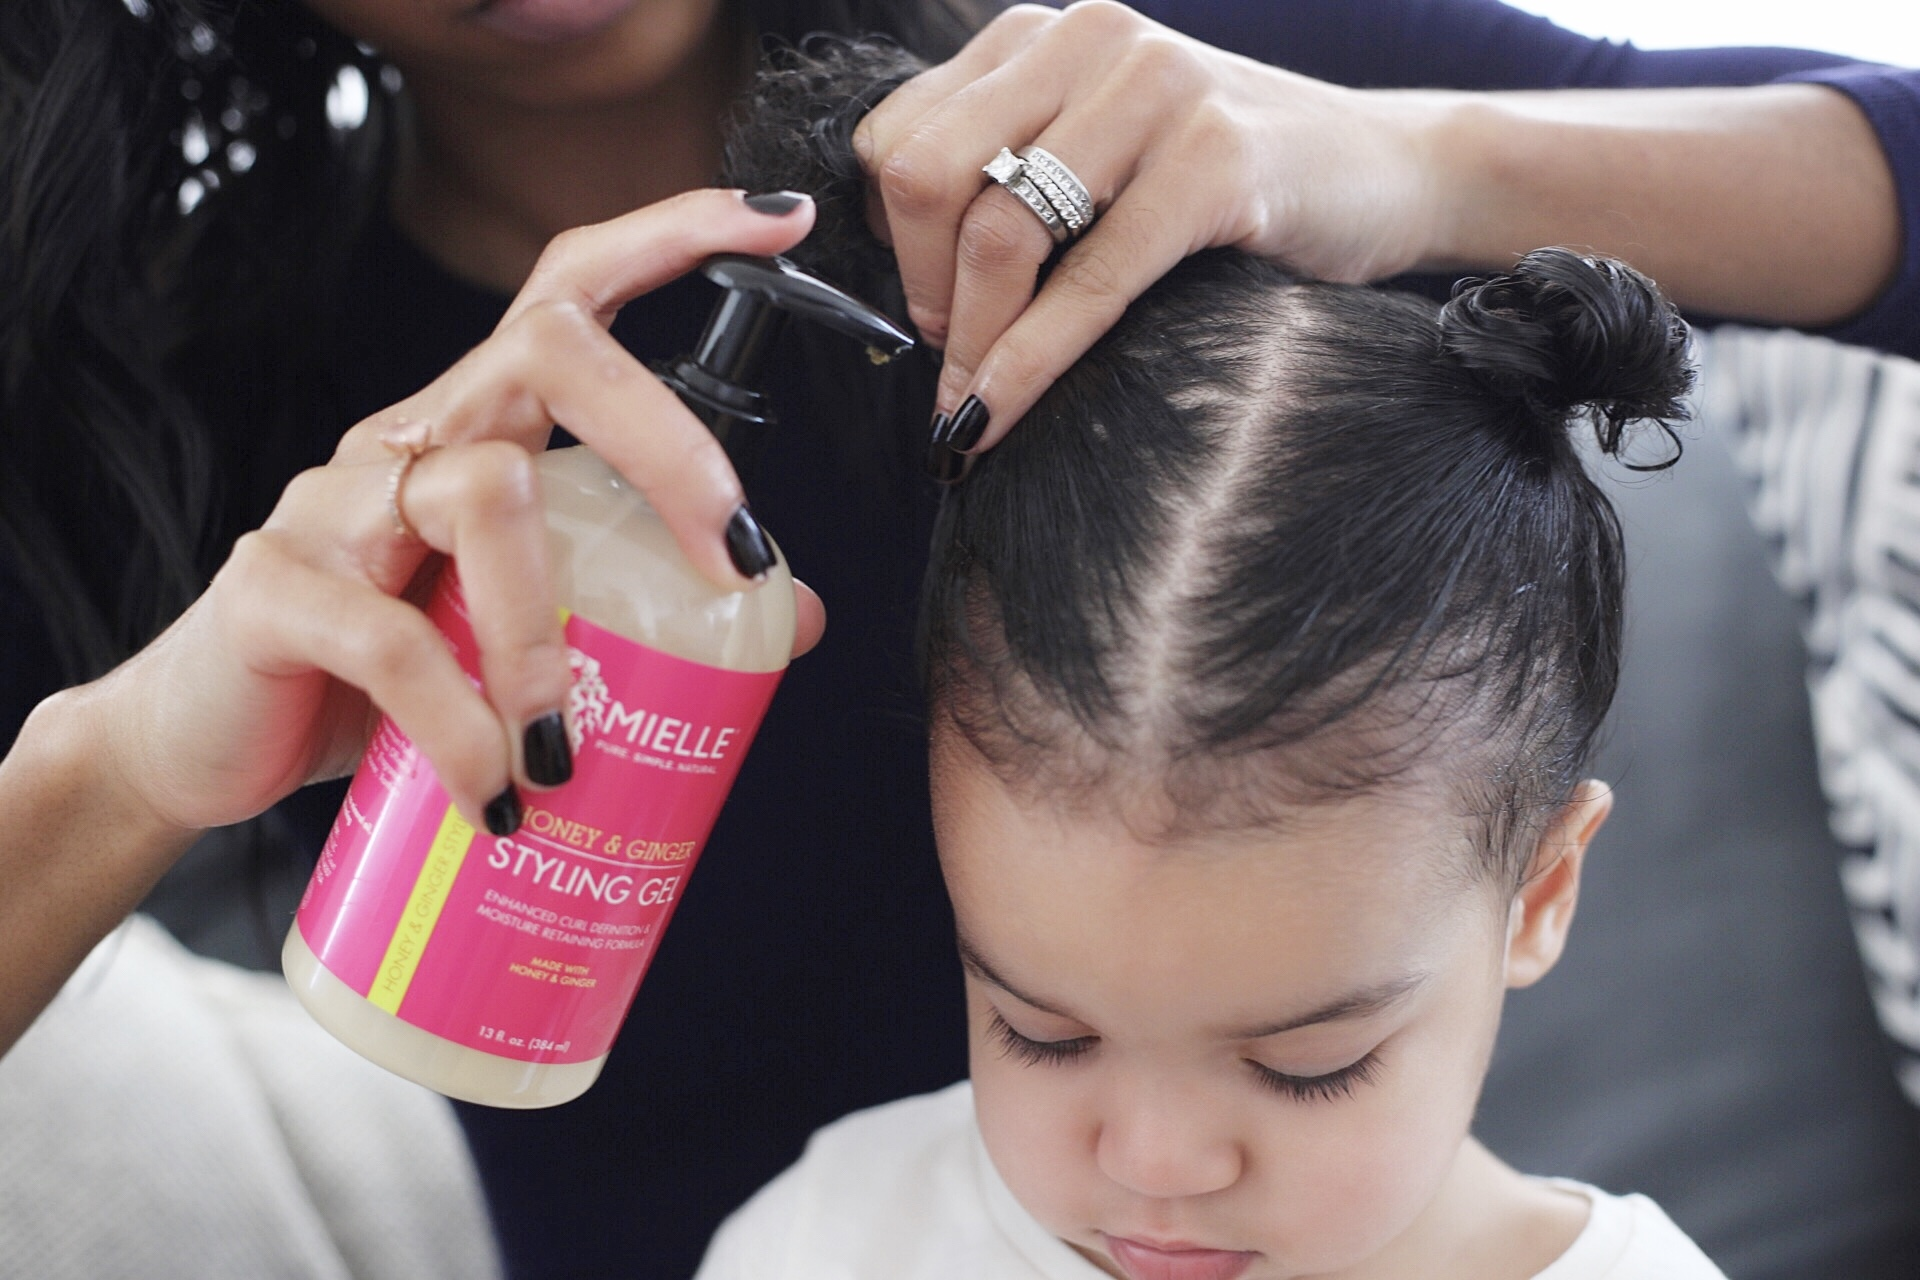 curly hair, toddler hair products, toddler hair styling, mielle organics, coconut oil for hair, toddler hair care, toddler hair